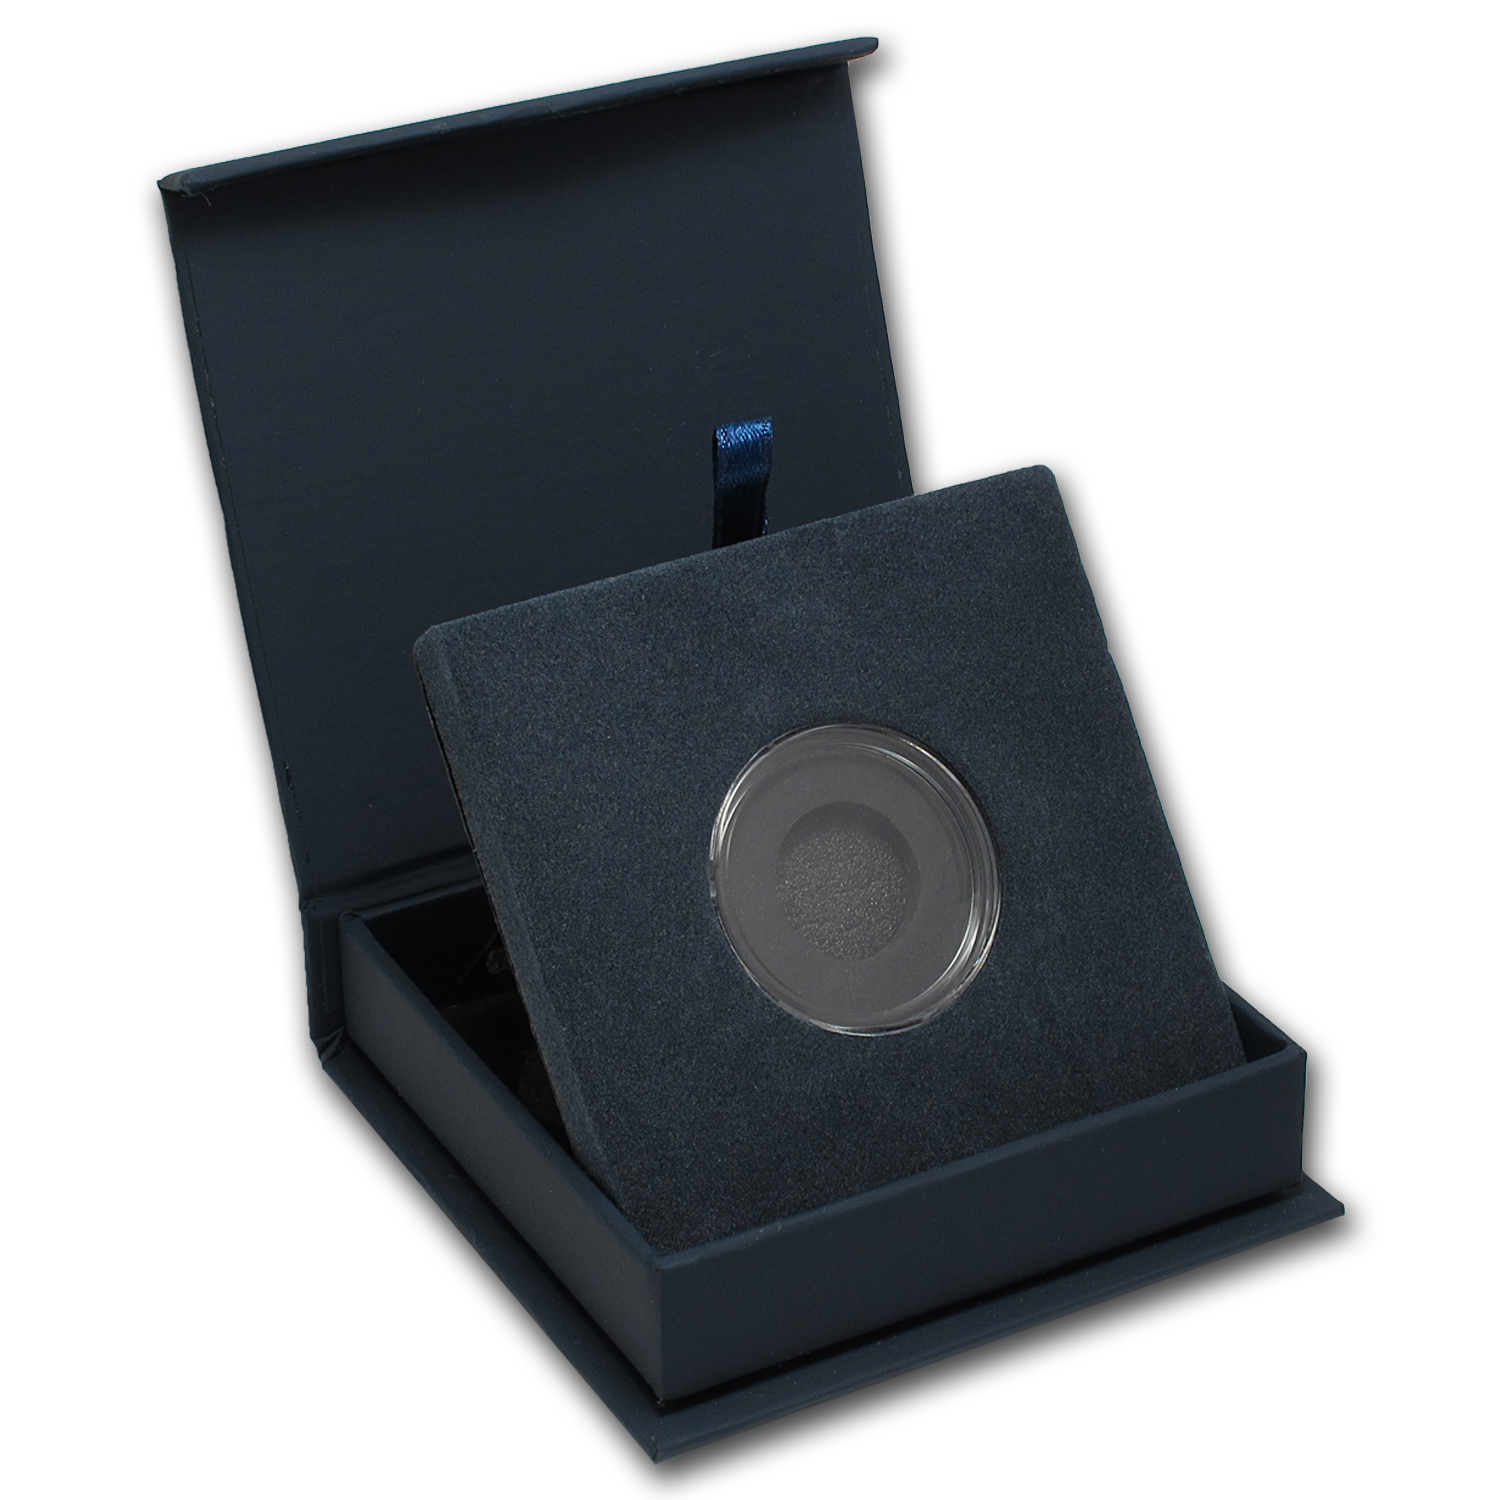 APMEX Gift Box - Includes 30.6 mm Direct Fit Air-Tite Holder